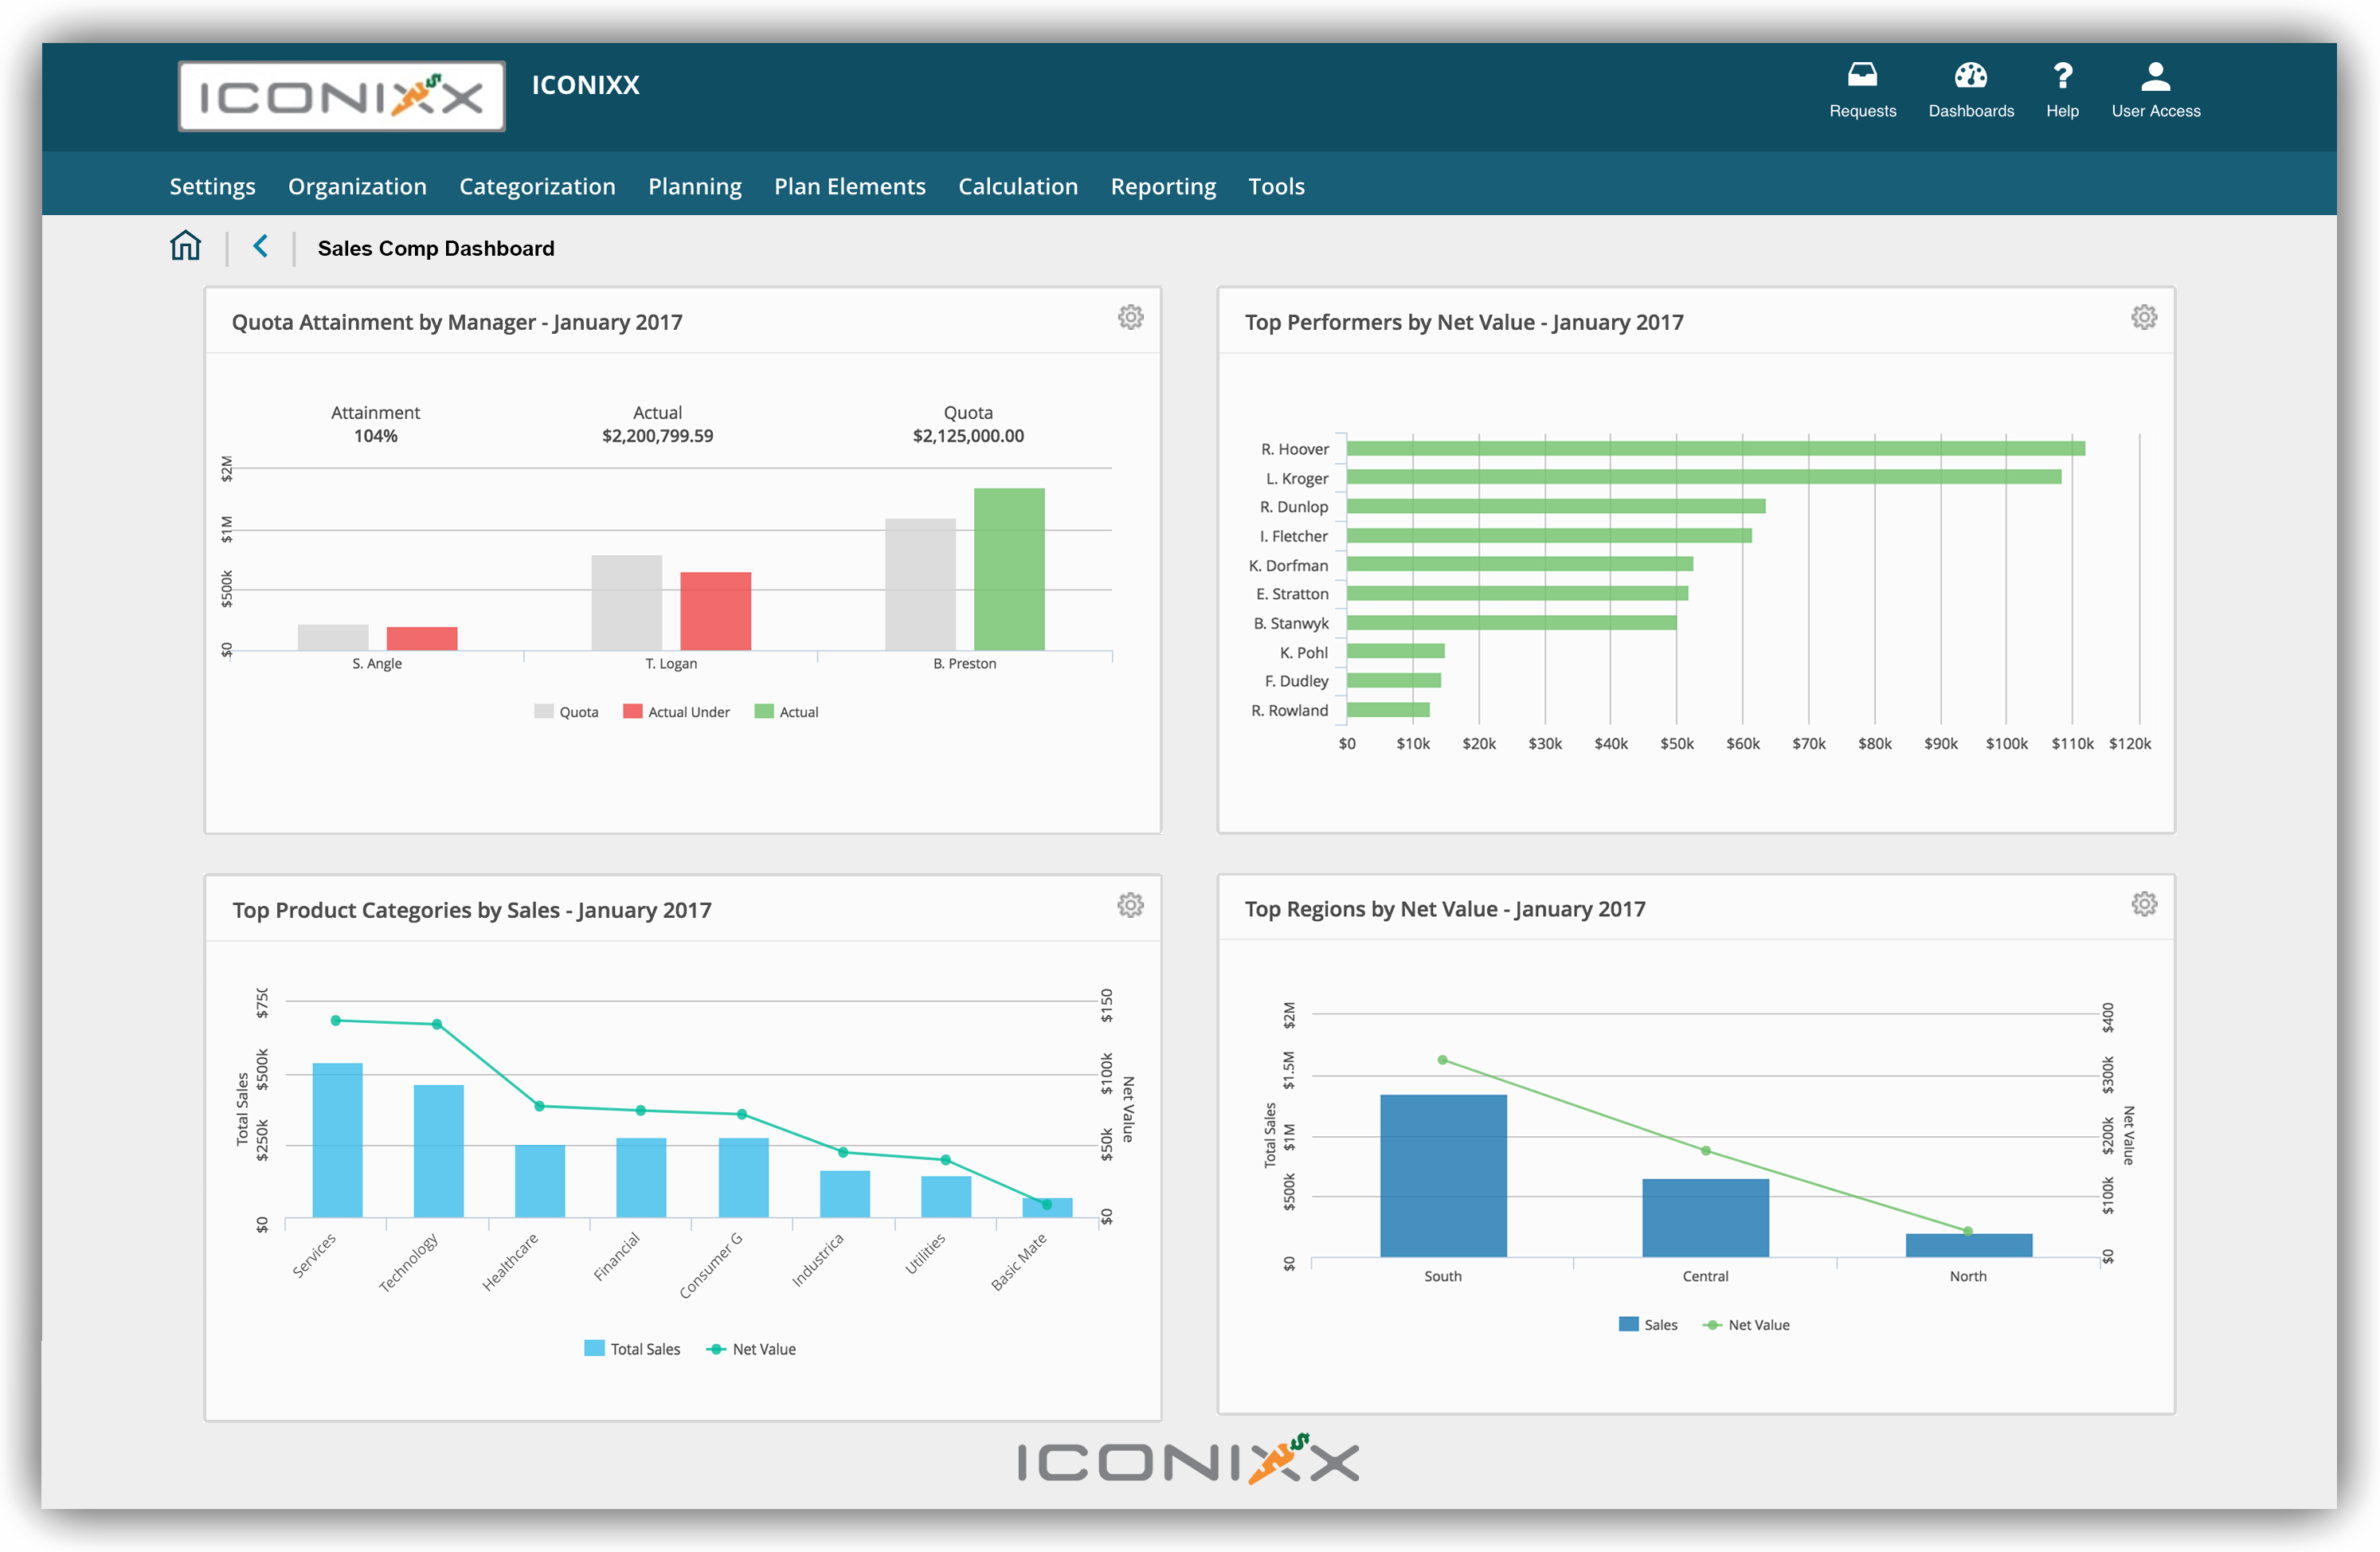 Iconixx sales commission dashboard.